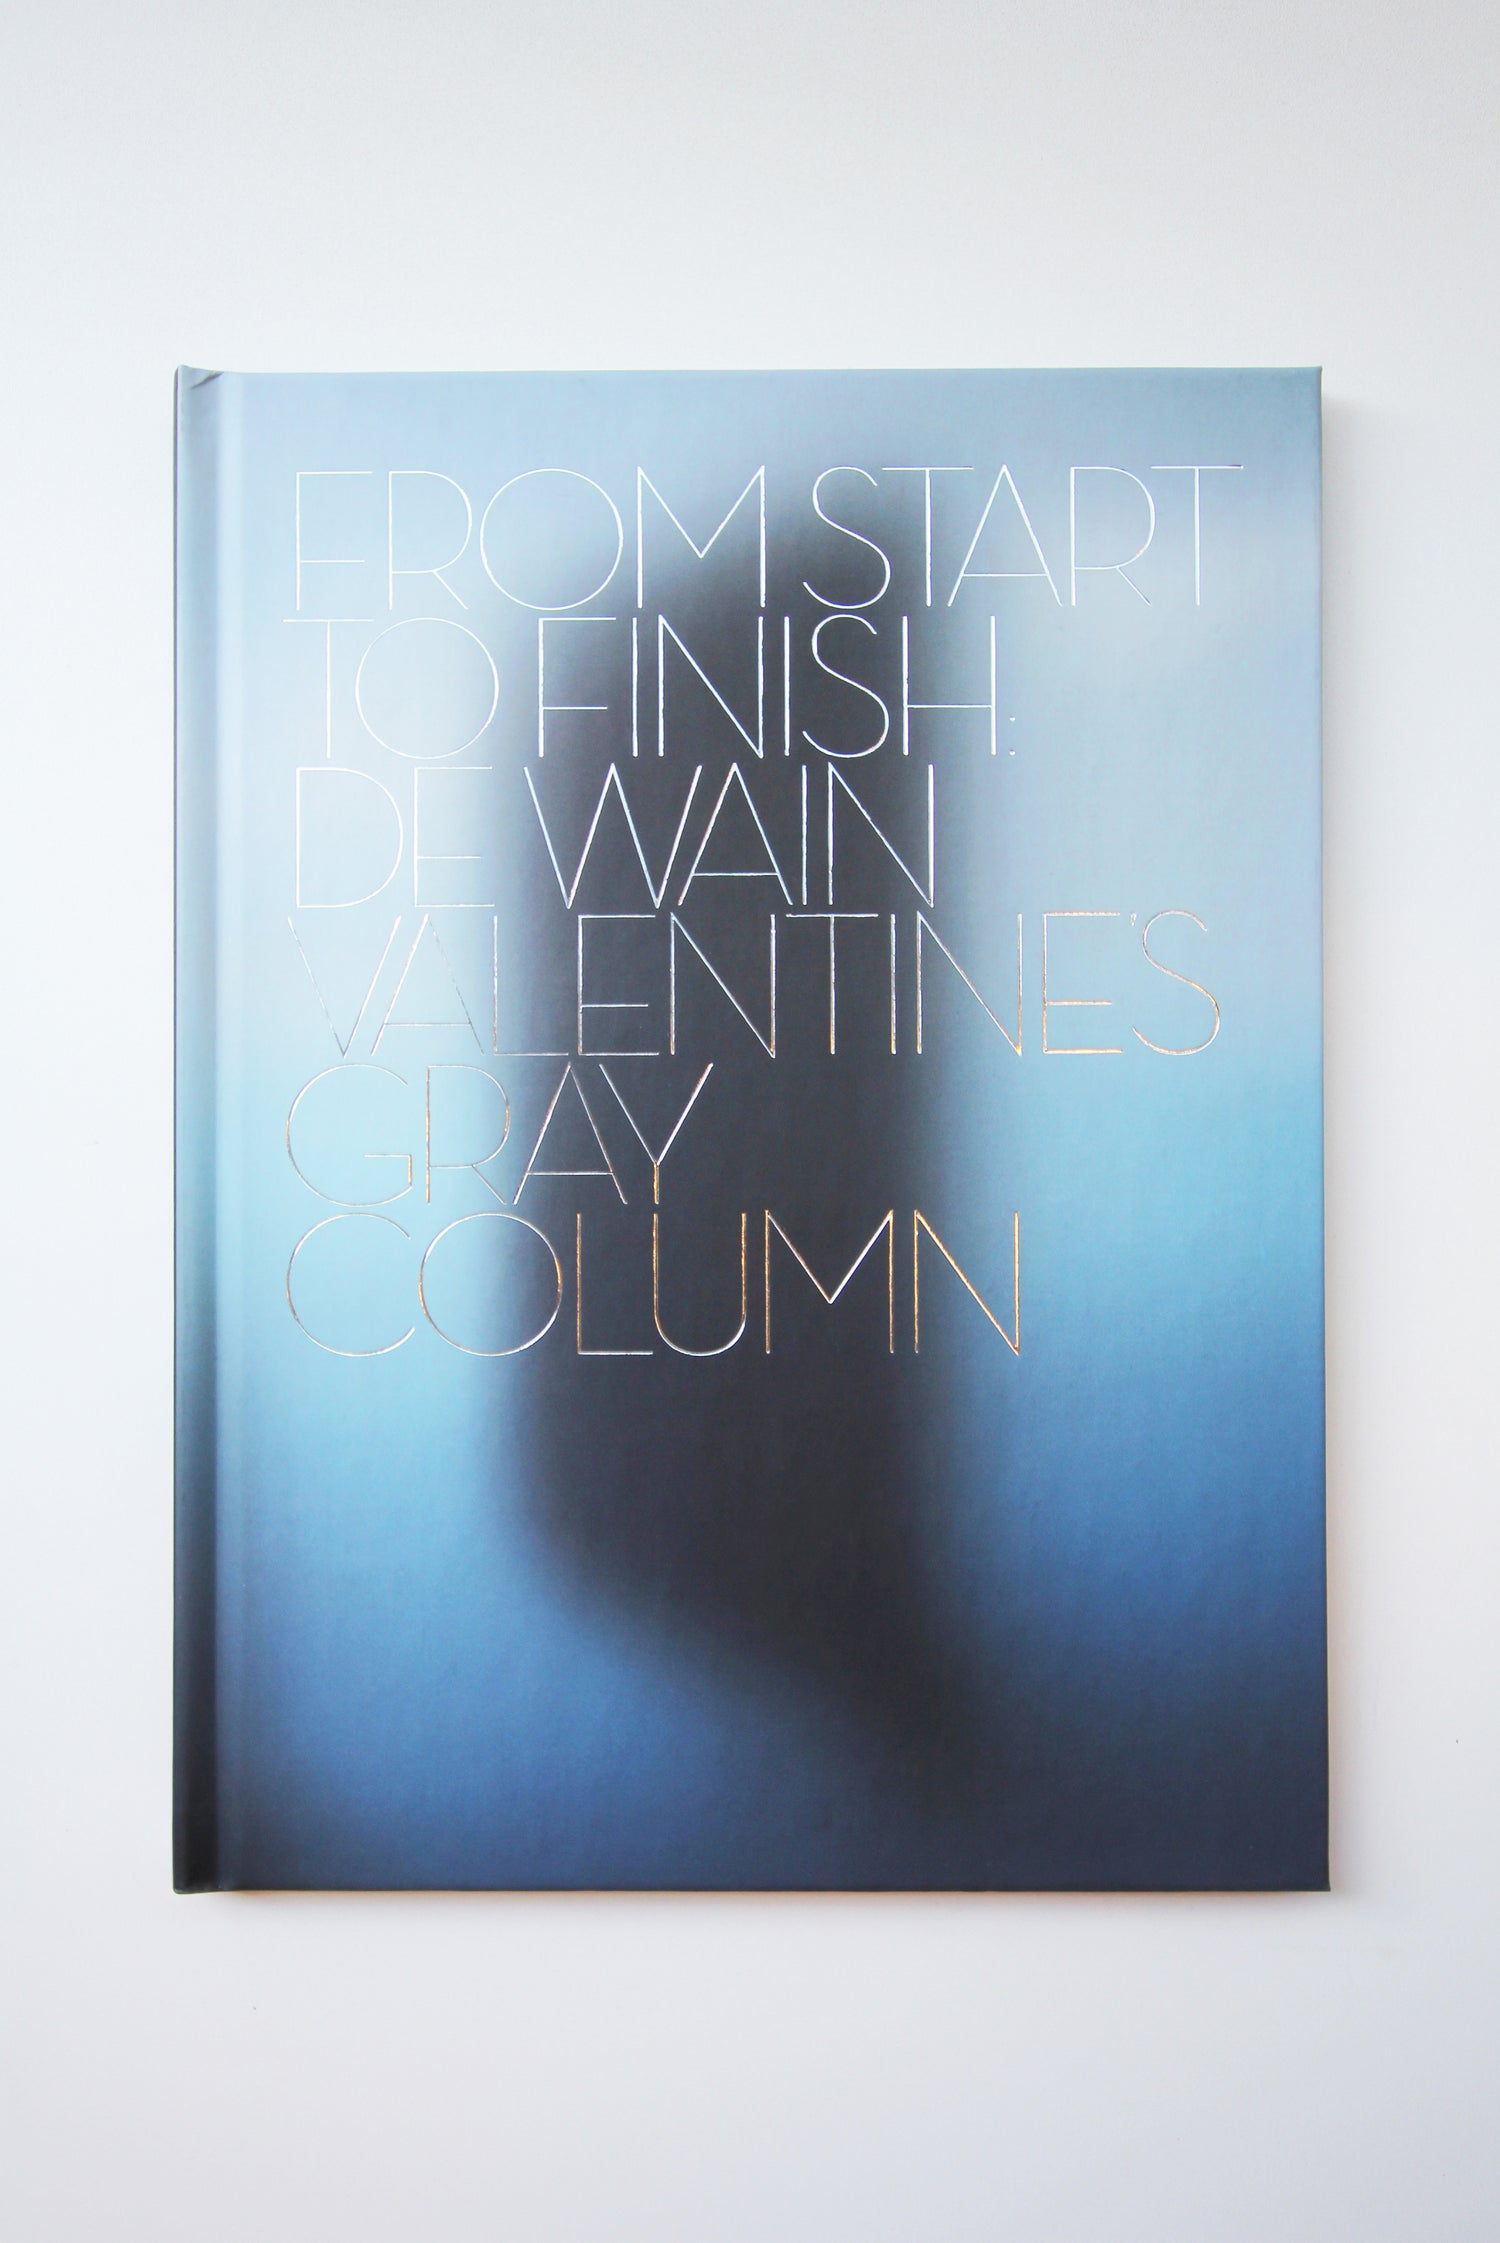 Image of From Start To Finish: De Wain Valentine's Gray Column